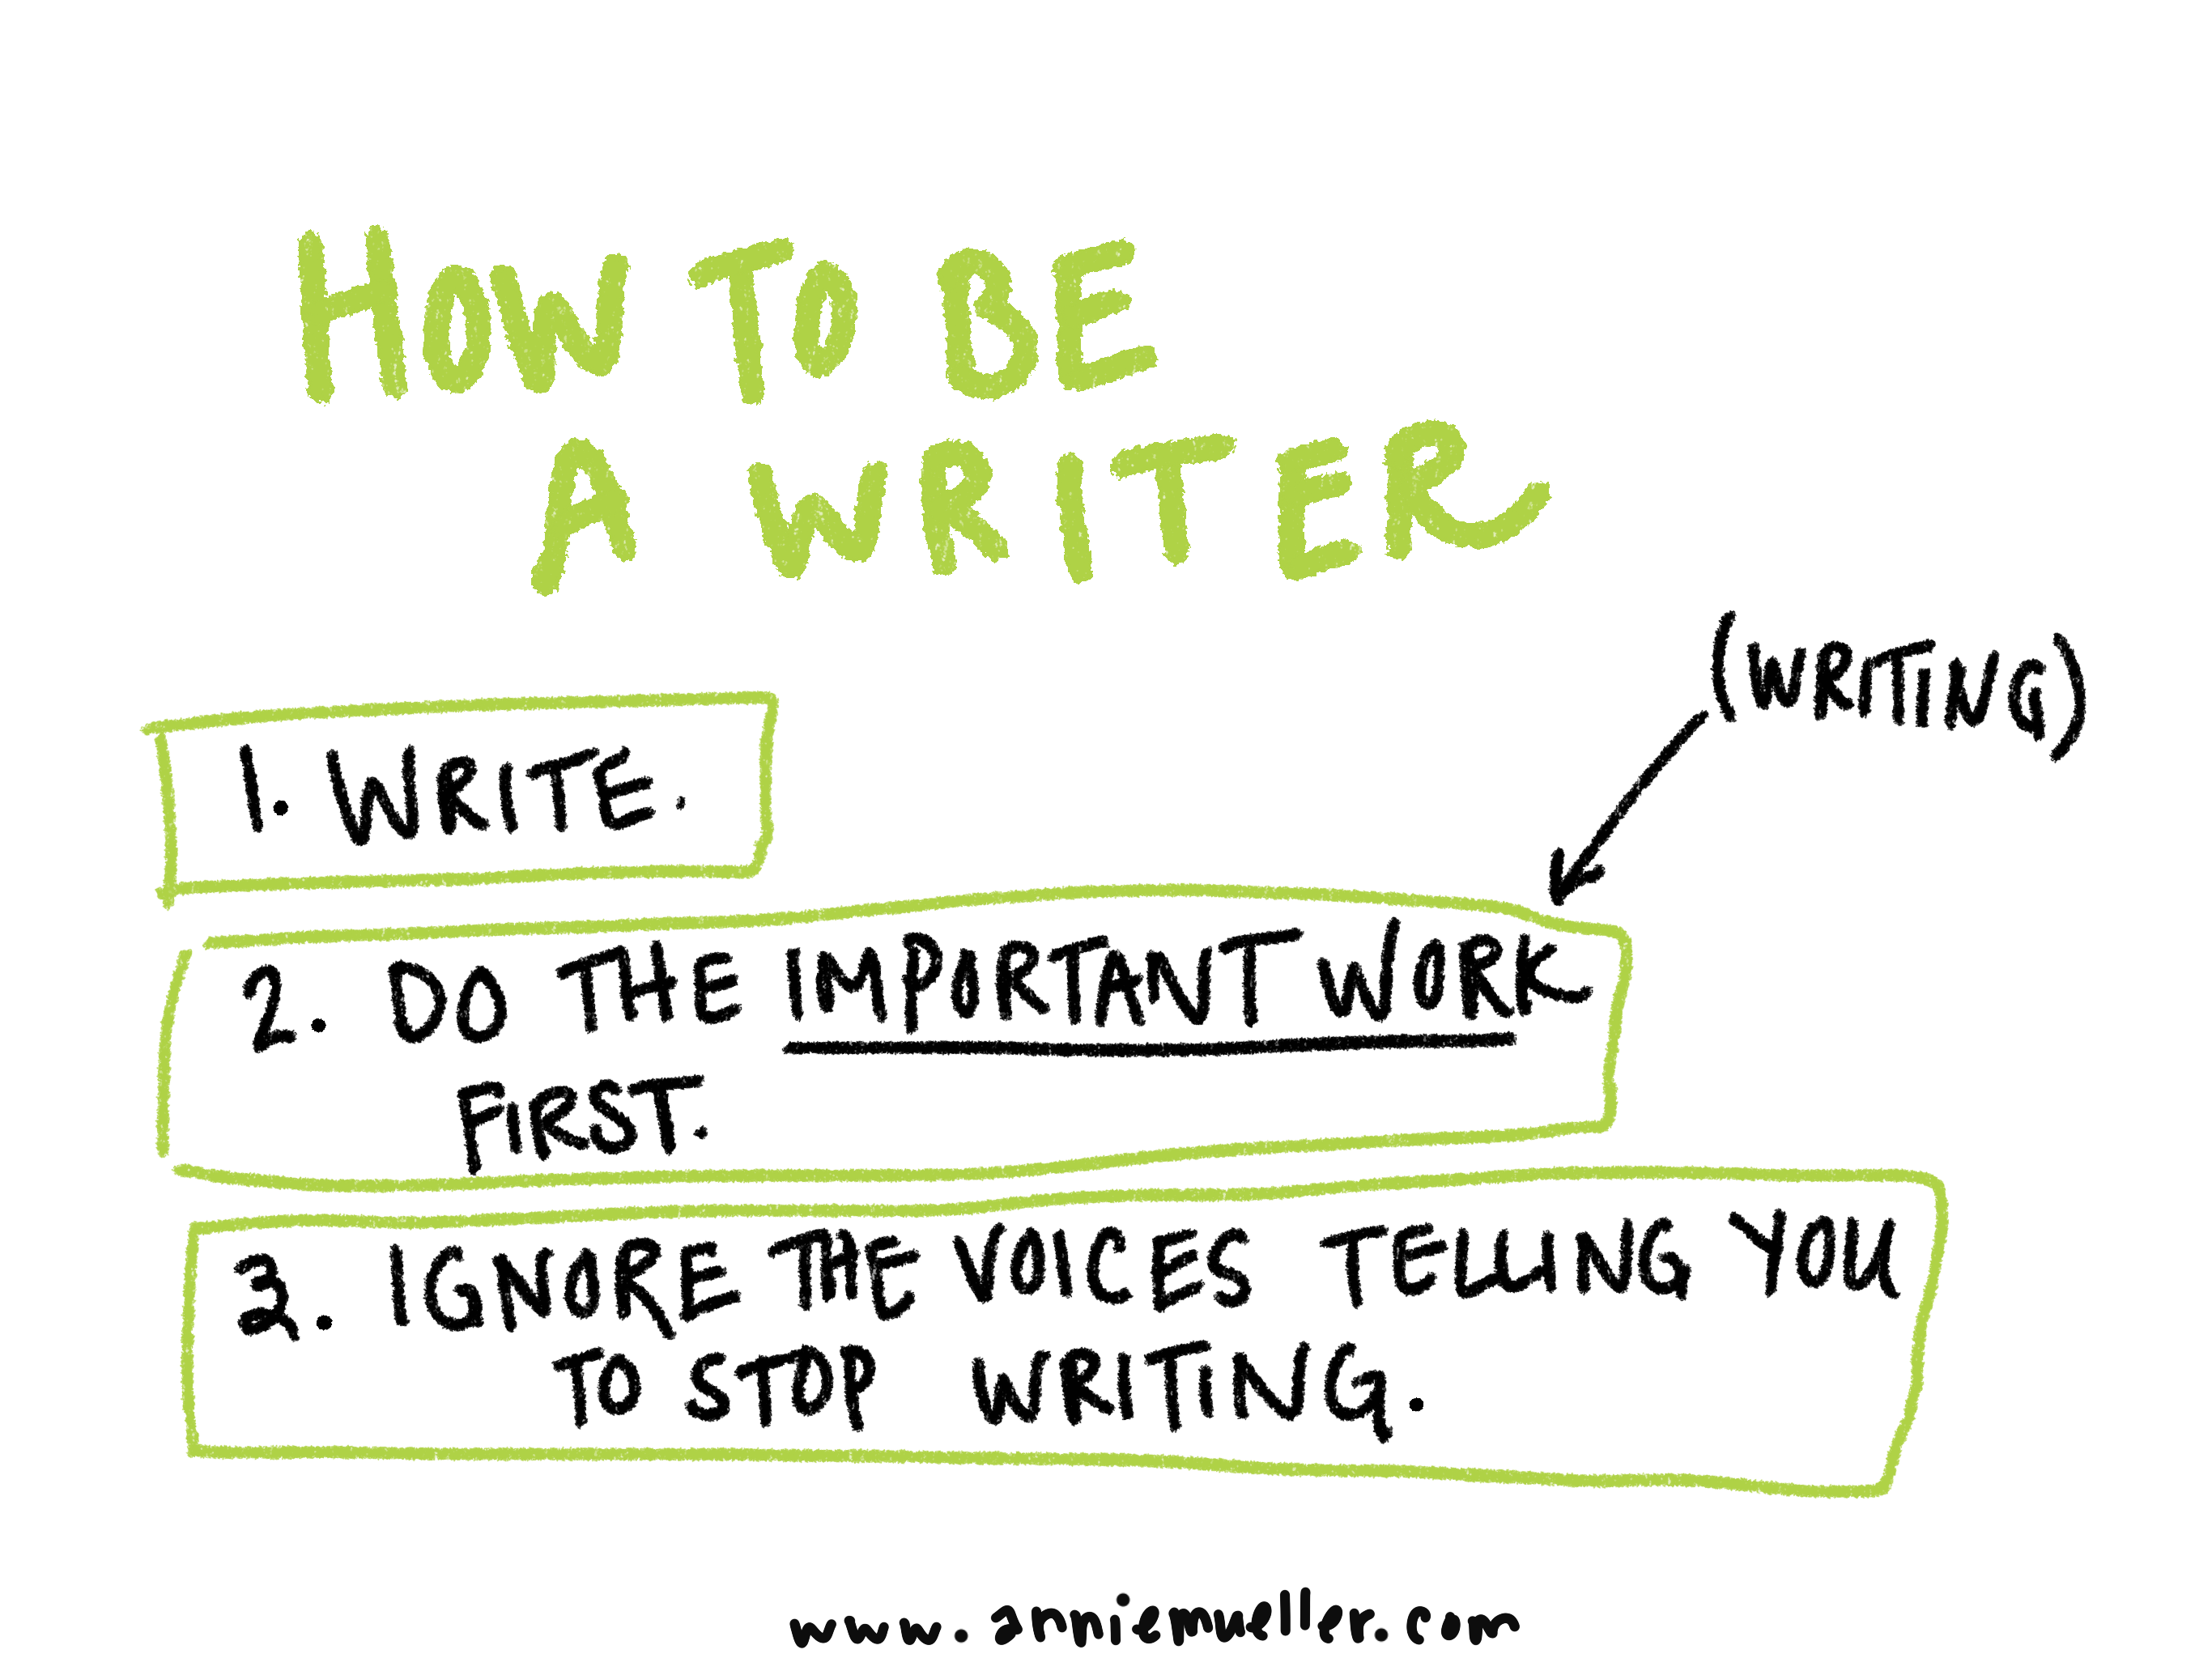 Be a writer!